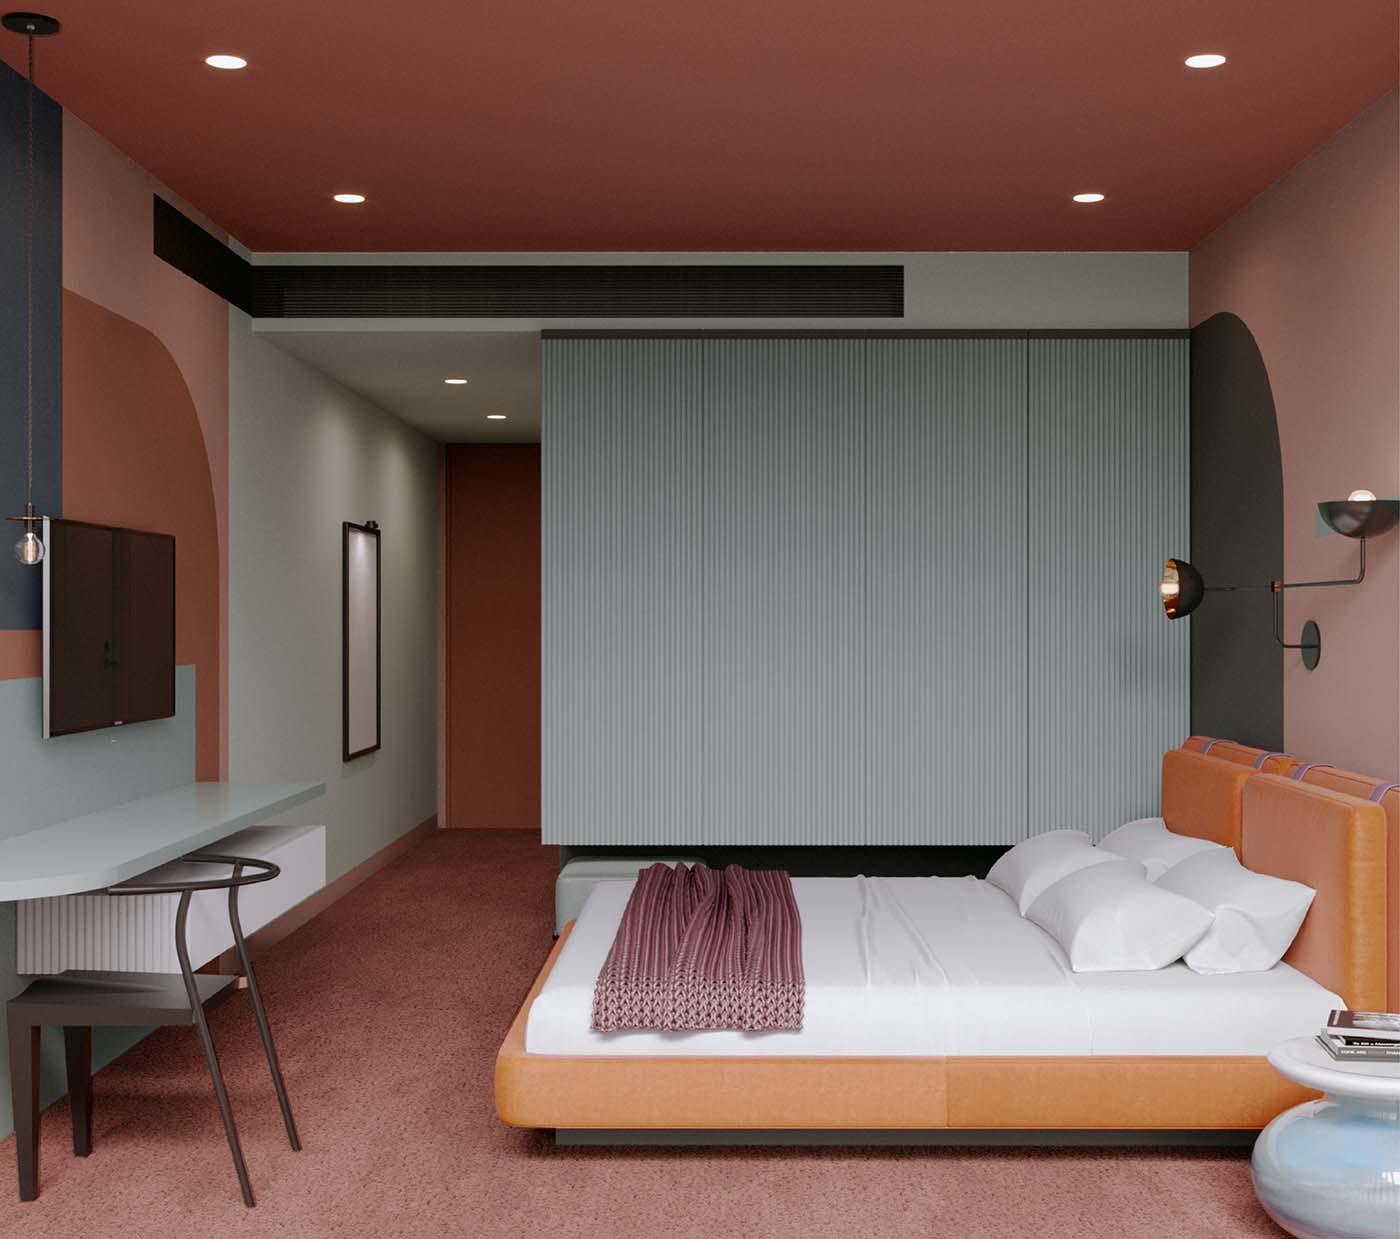 Hotel bedroom with wireless technology and funky colours such as orange, pink and acquamarine.